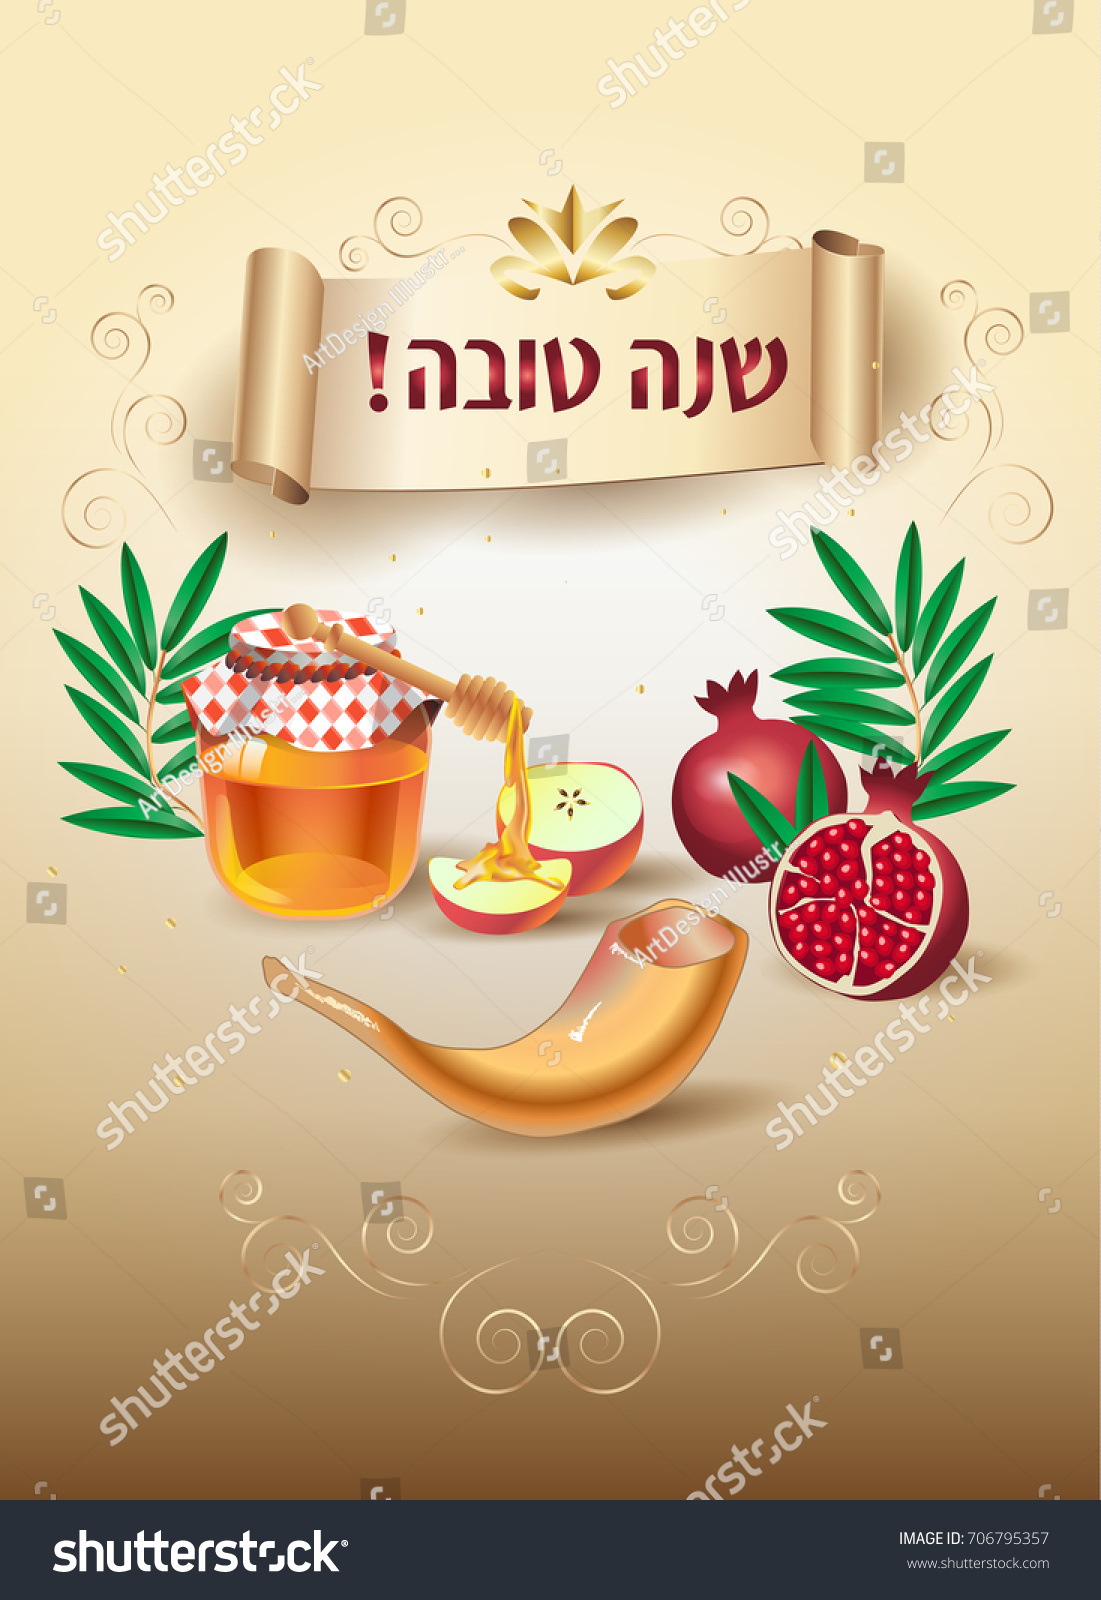 Happy new year rosh hashanah greeting stock vector 706795357 rosh hashanah greeting card jewish new year text shana kristyandbryce Choice Image